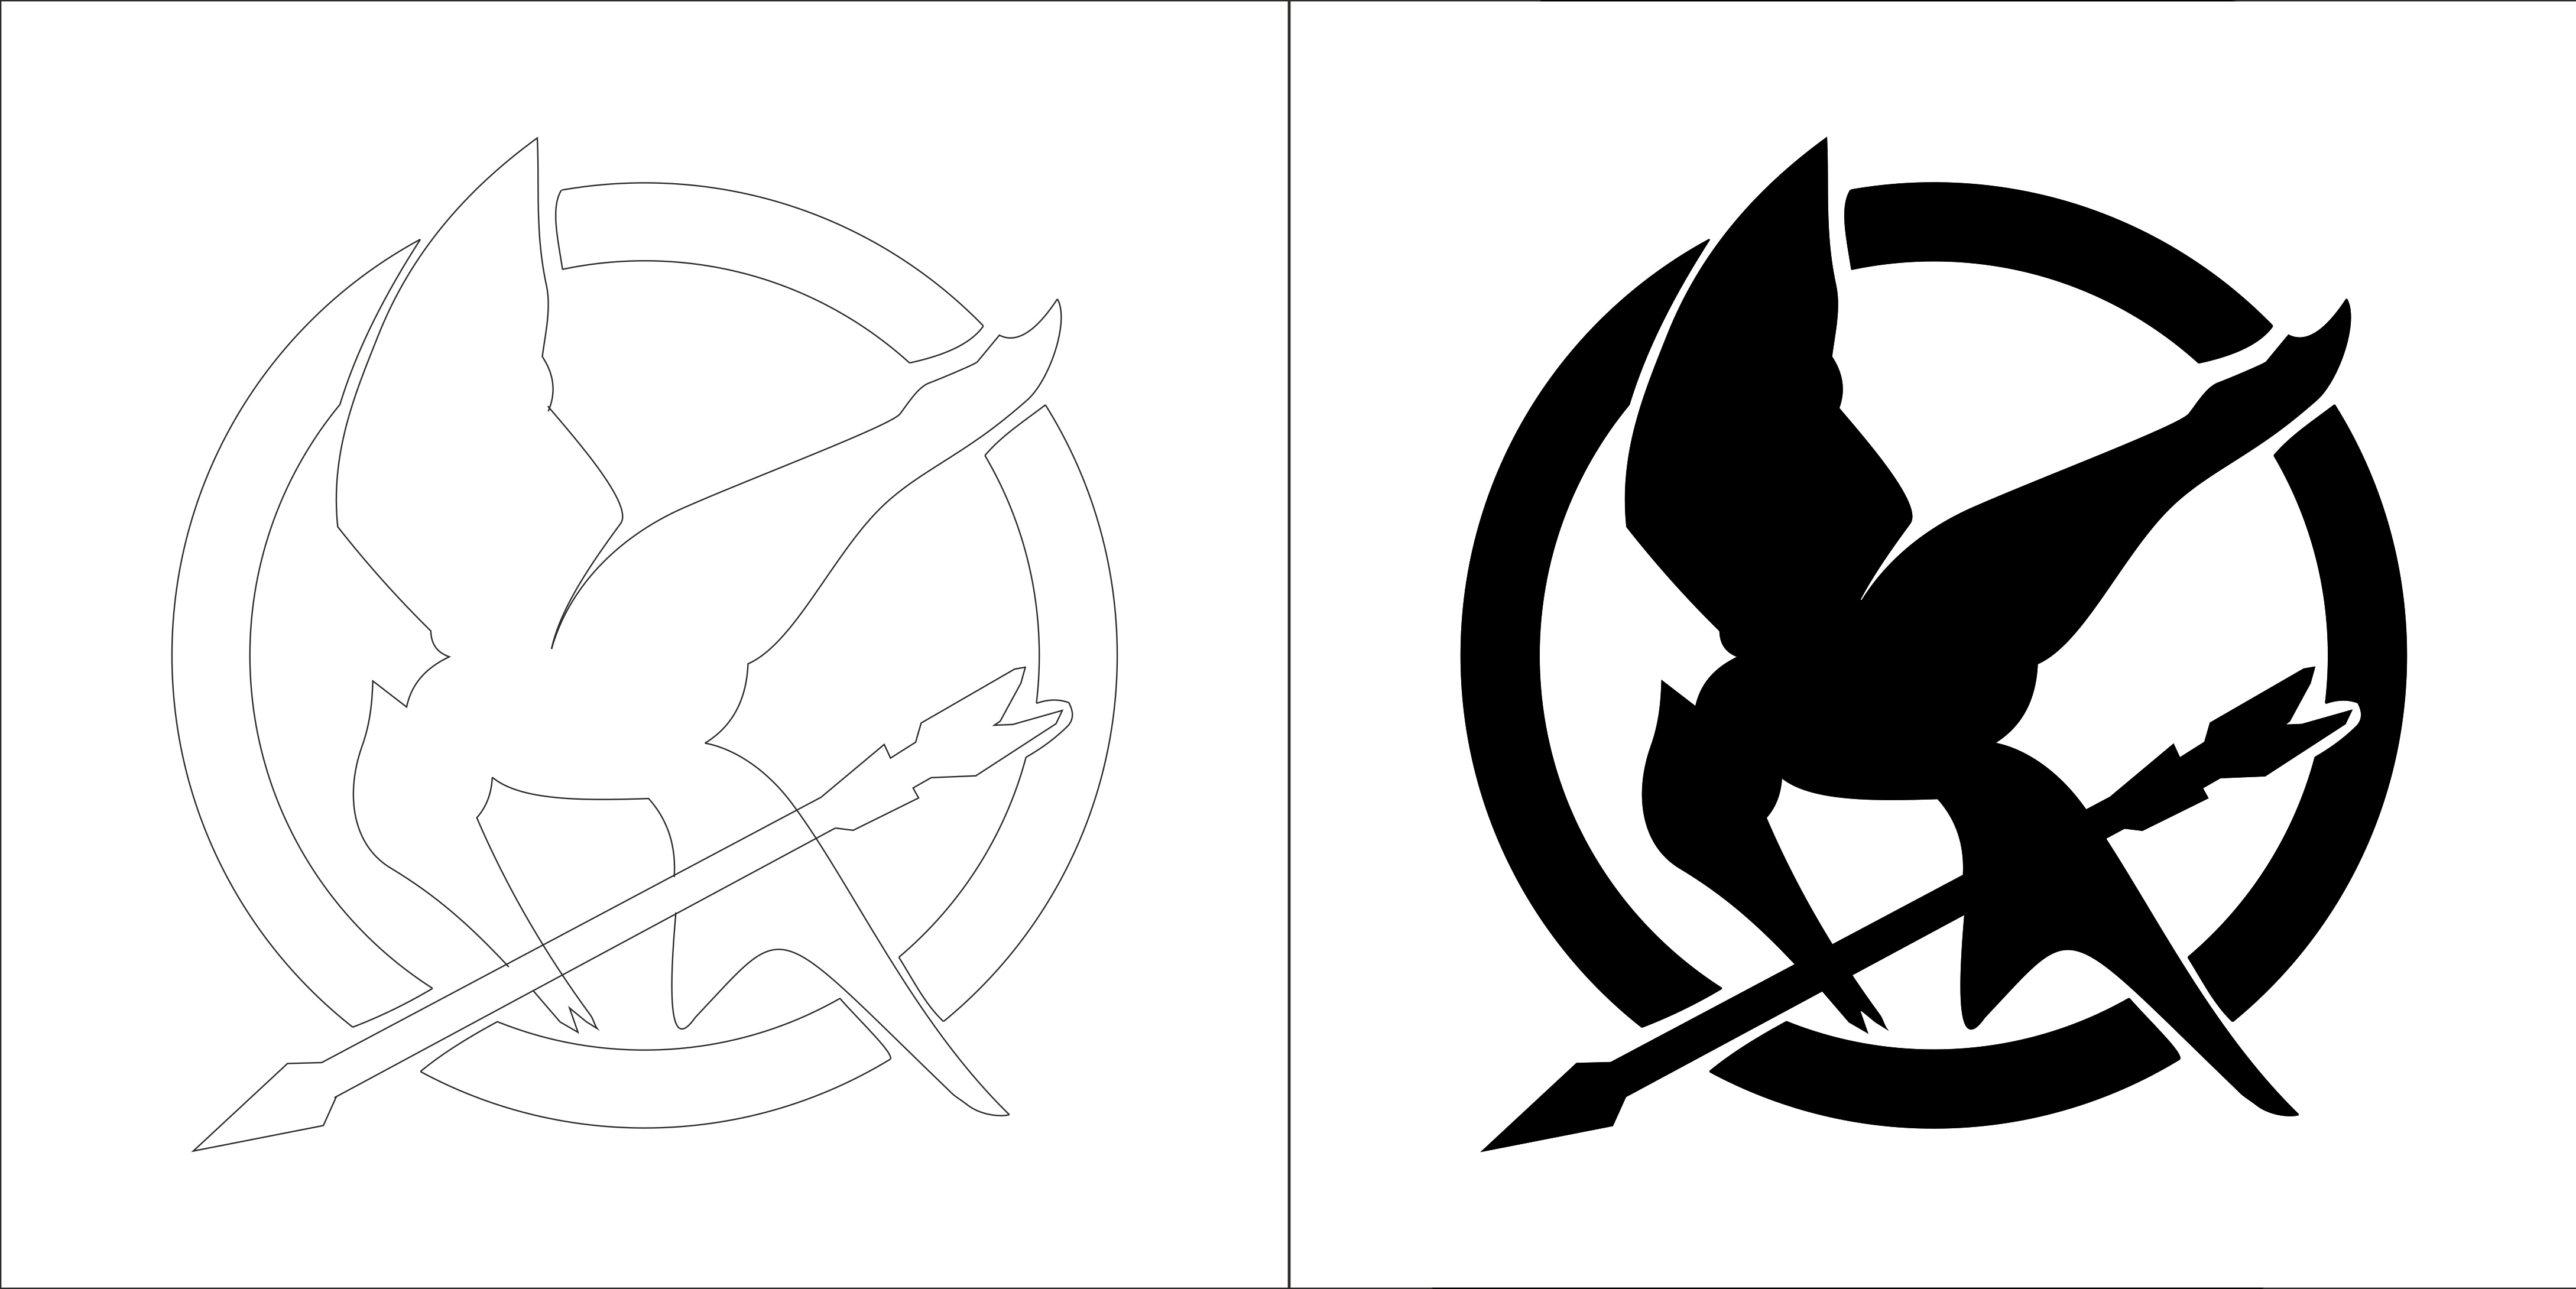 mockingjay outline | Hunger Games Camp | Pinterest ... |Hunger Games Mockingjay Pin Outline